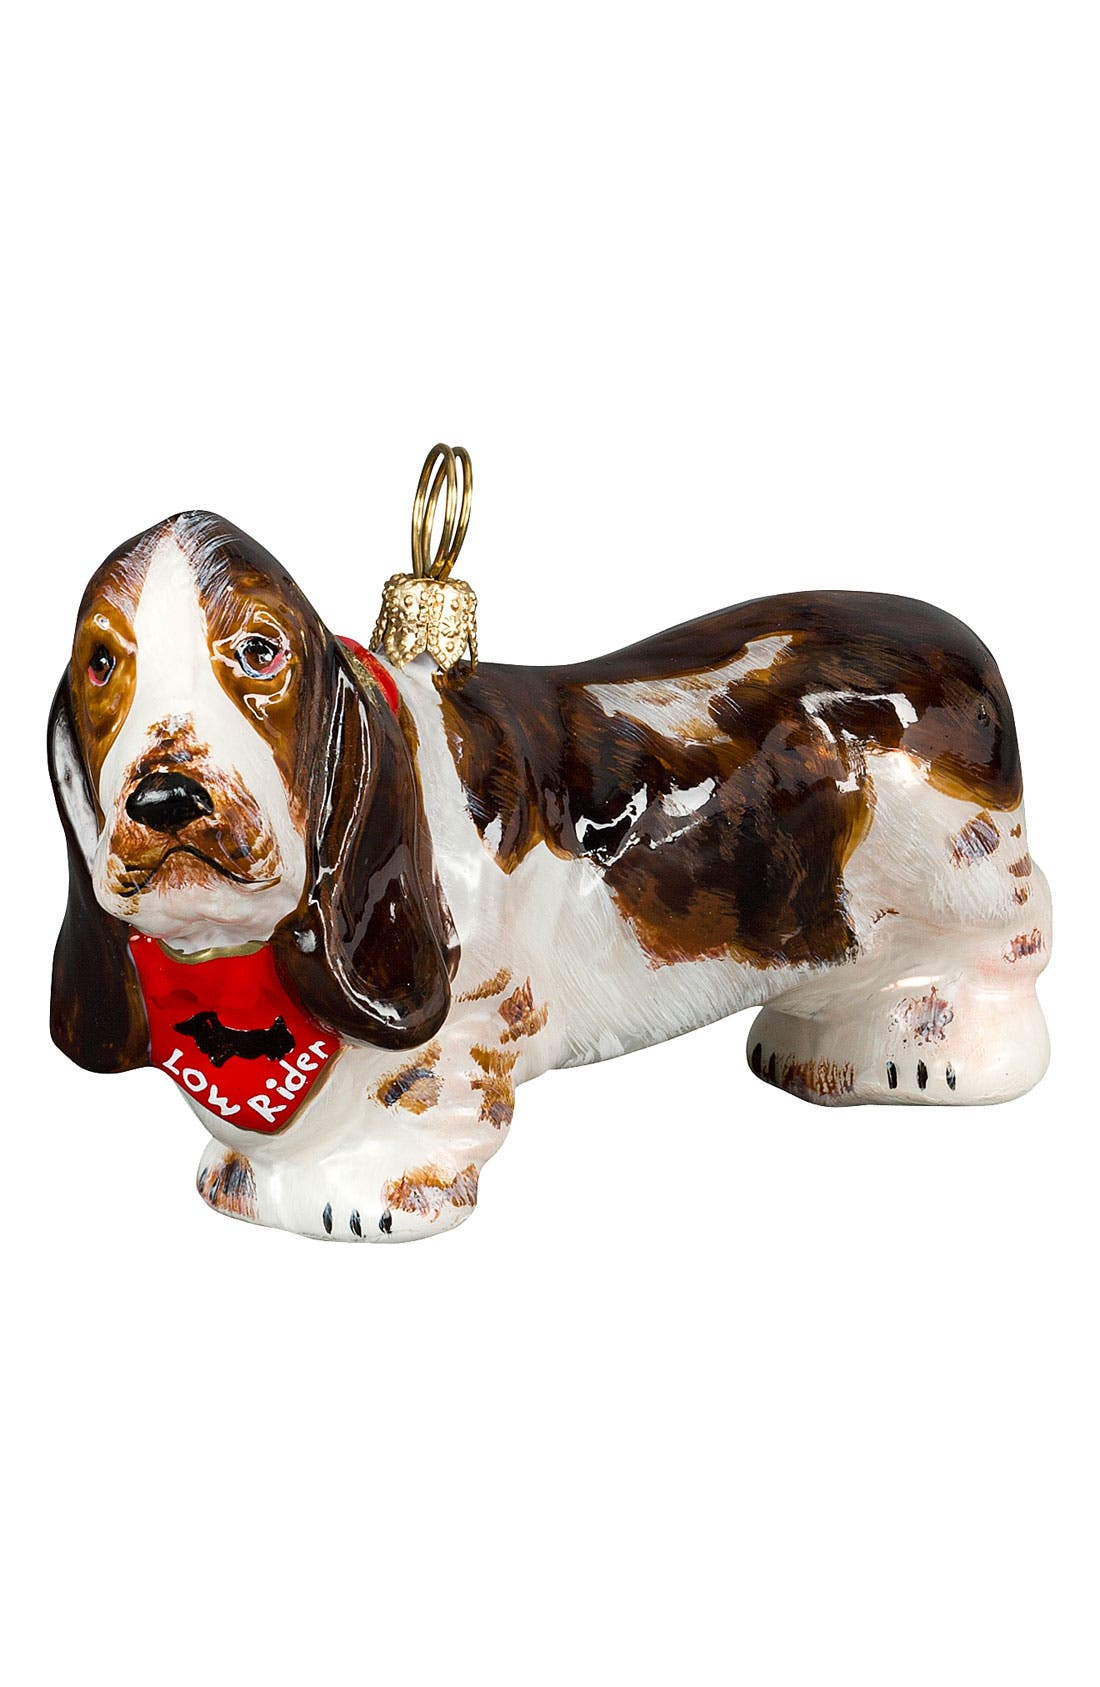 Alternate Image 1 Selected - Joy to the World Collectibles 'Basset Hound Low Rider' Ornament